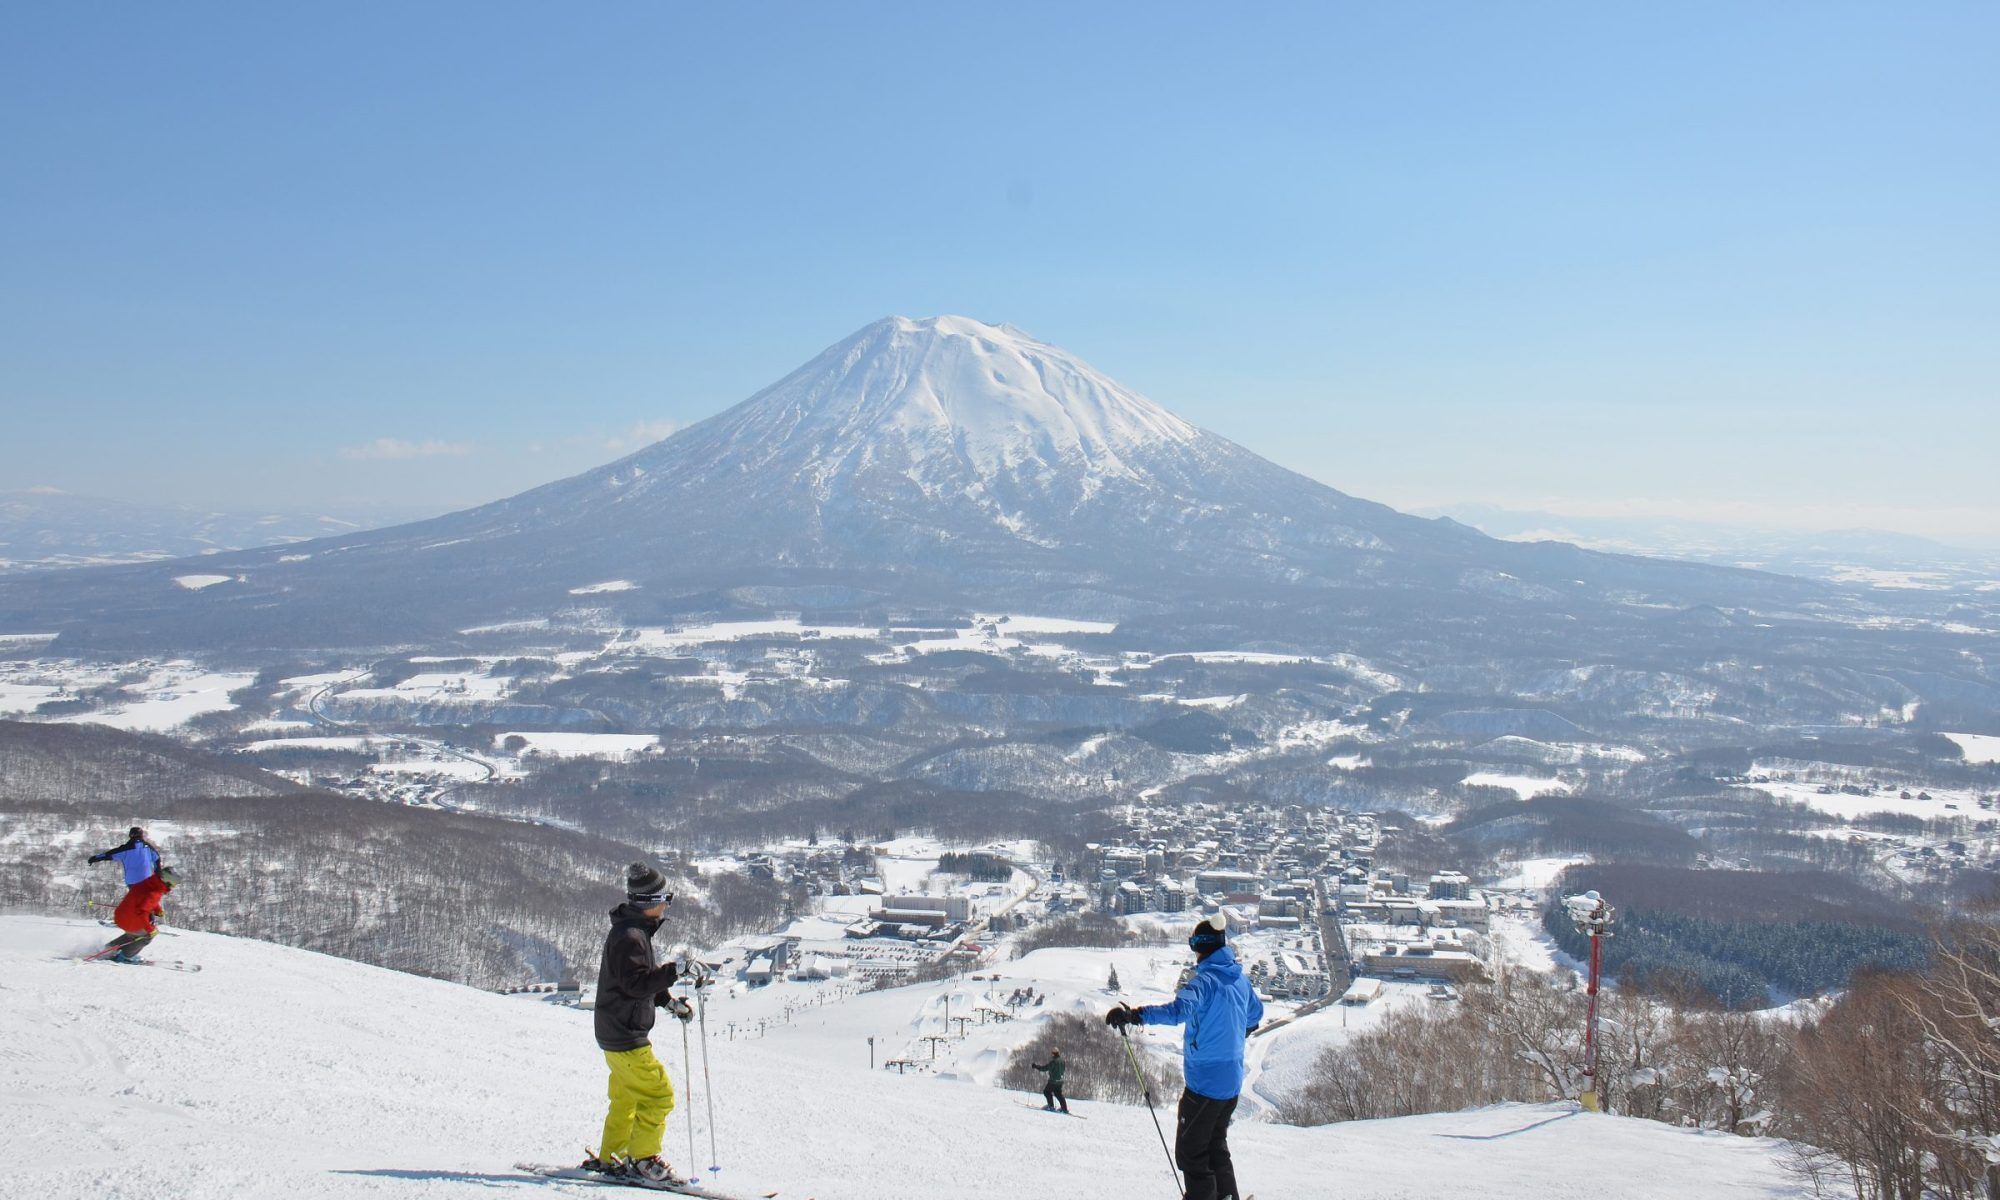 Niseko Grand Hirafu, part of Niseko United, now with the IKON Pass, making it the third continent under one ski pass.